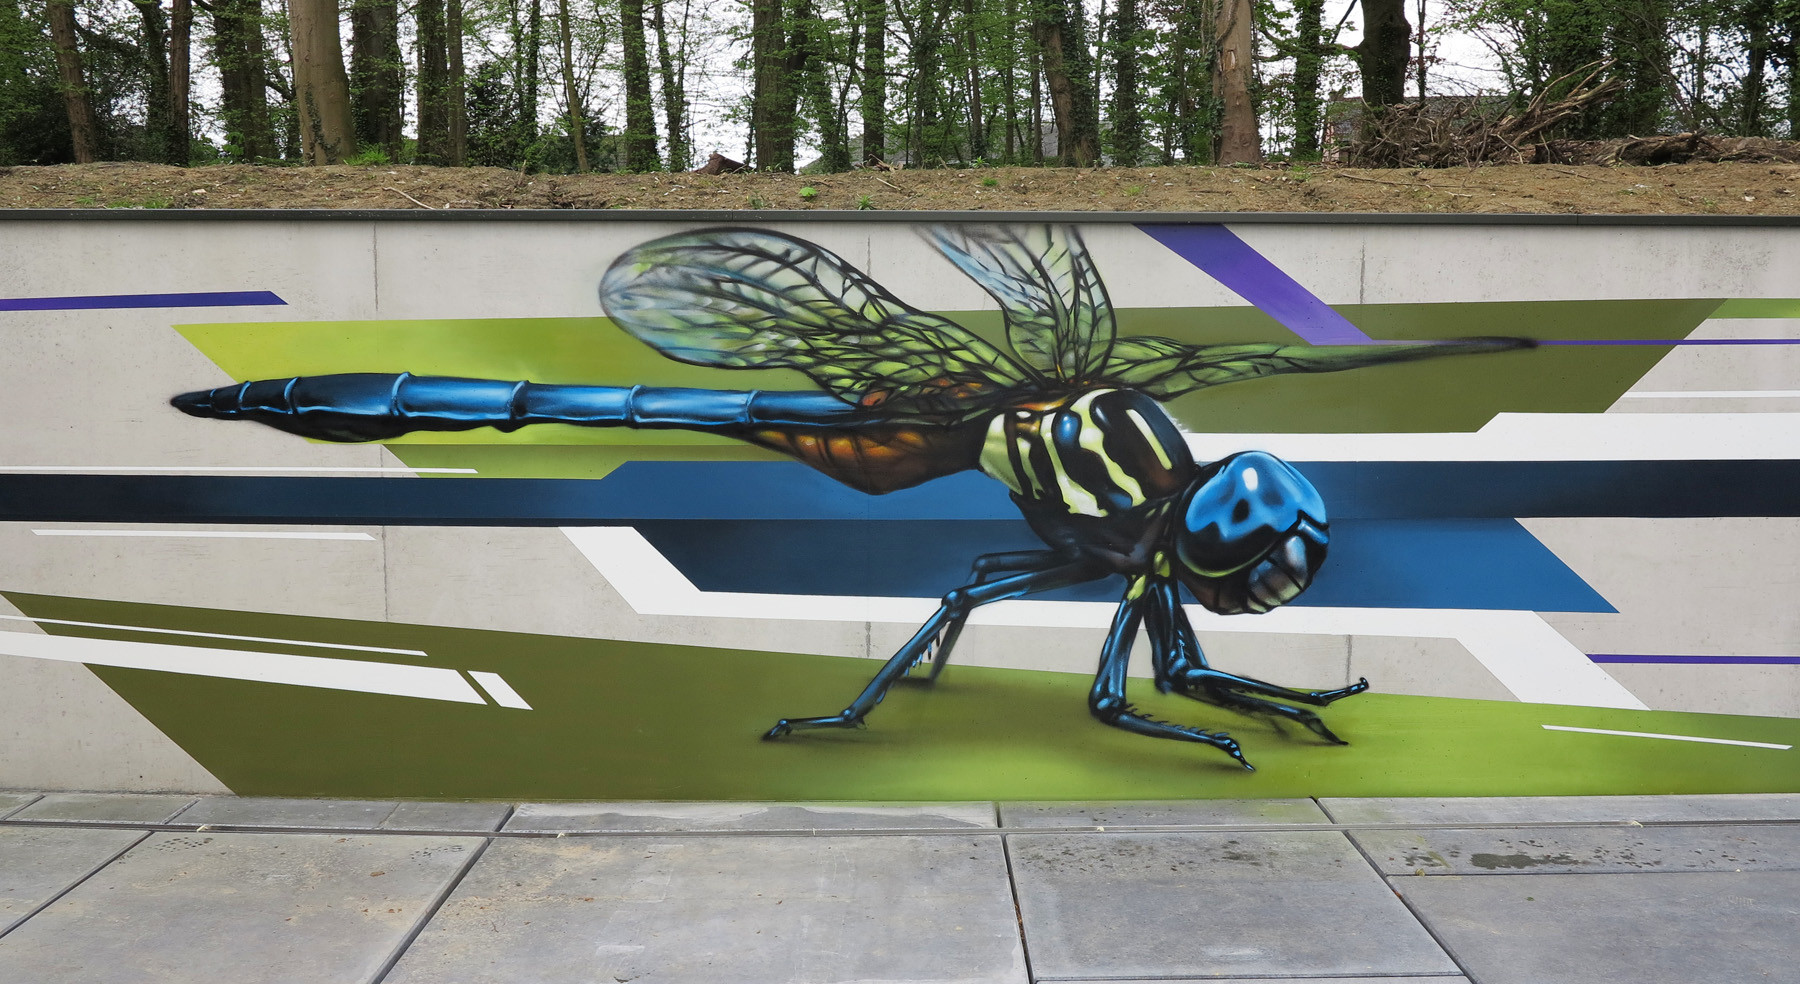 Dragonfly, Spray can on concrete, Mechelen, Belgium